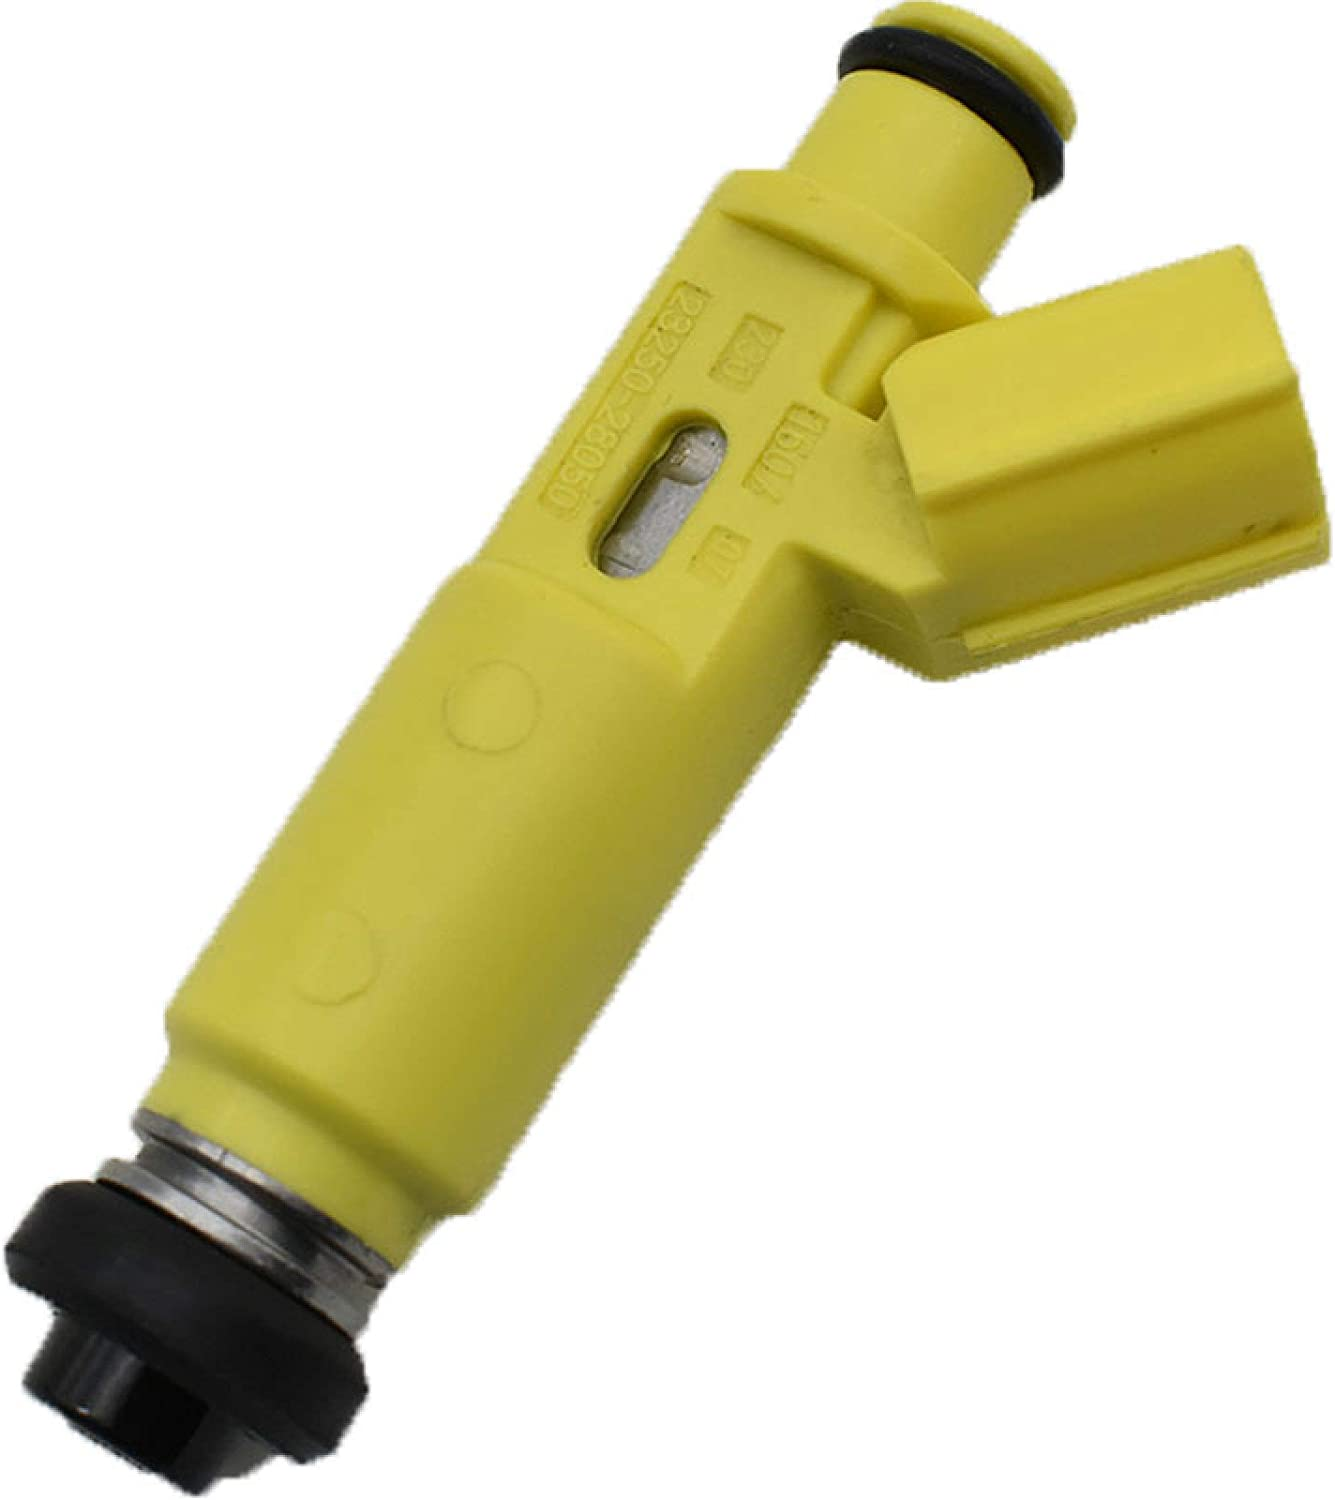 BYWWANG 1pc Car Original Direct sale of manufacturer Bargain Fuel and are efficient Durabl injectors